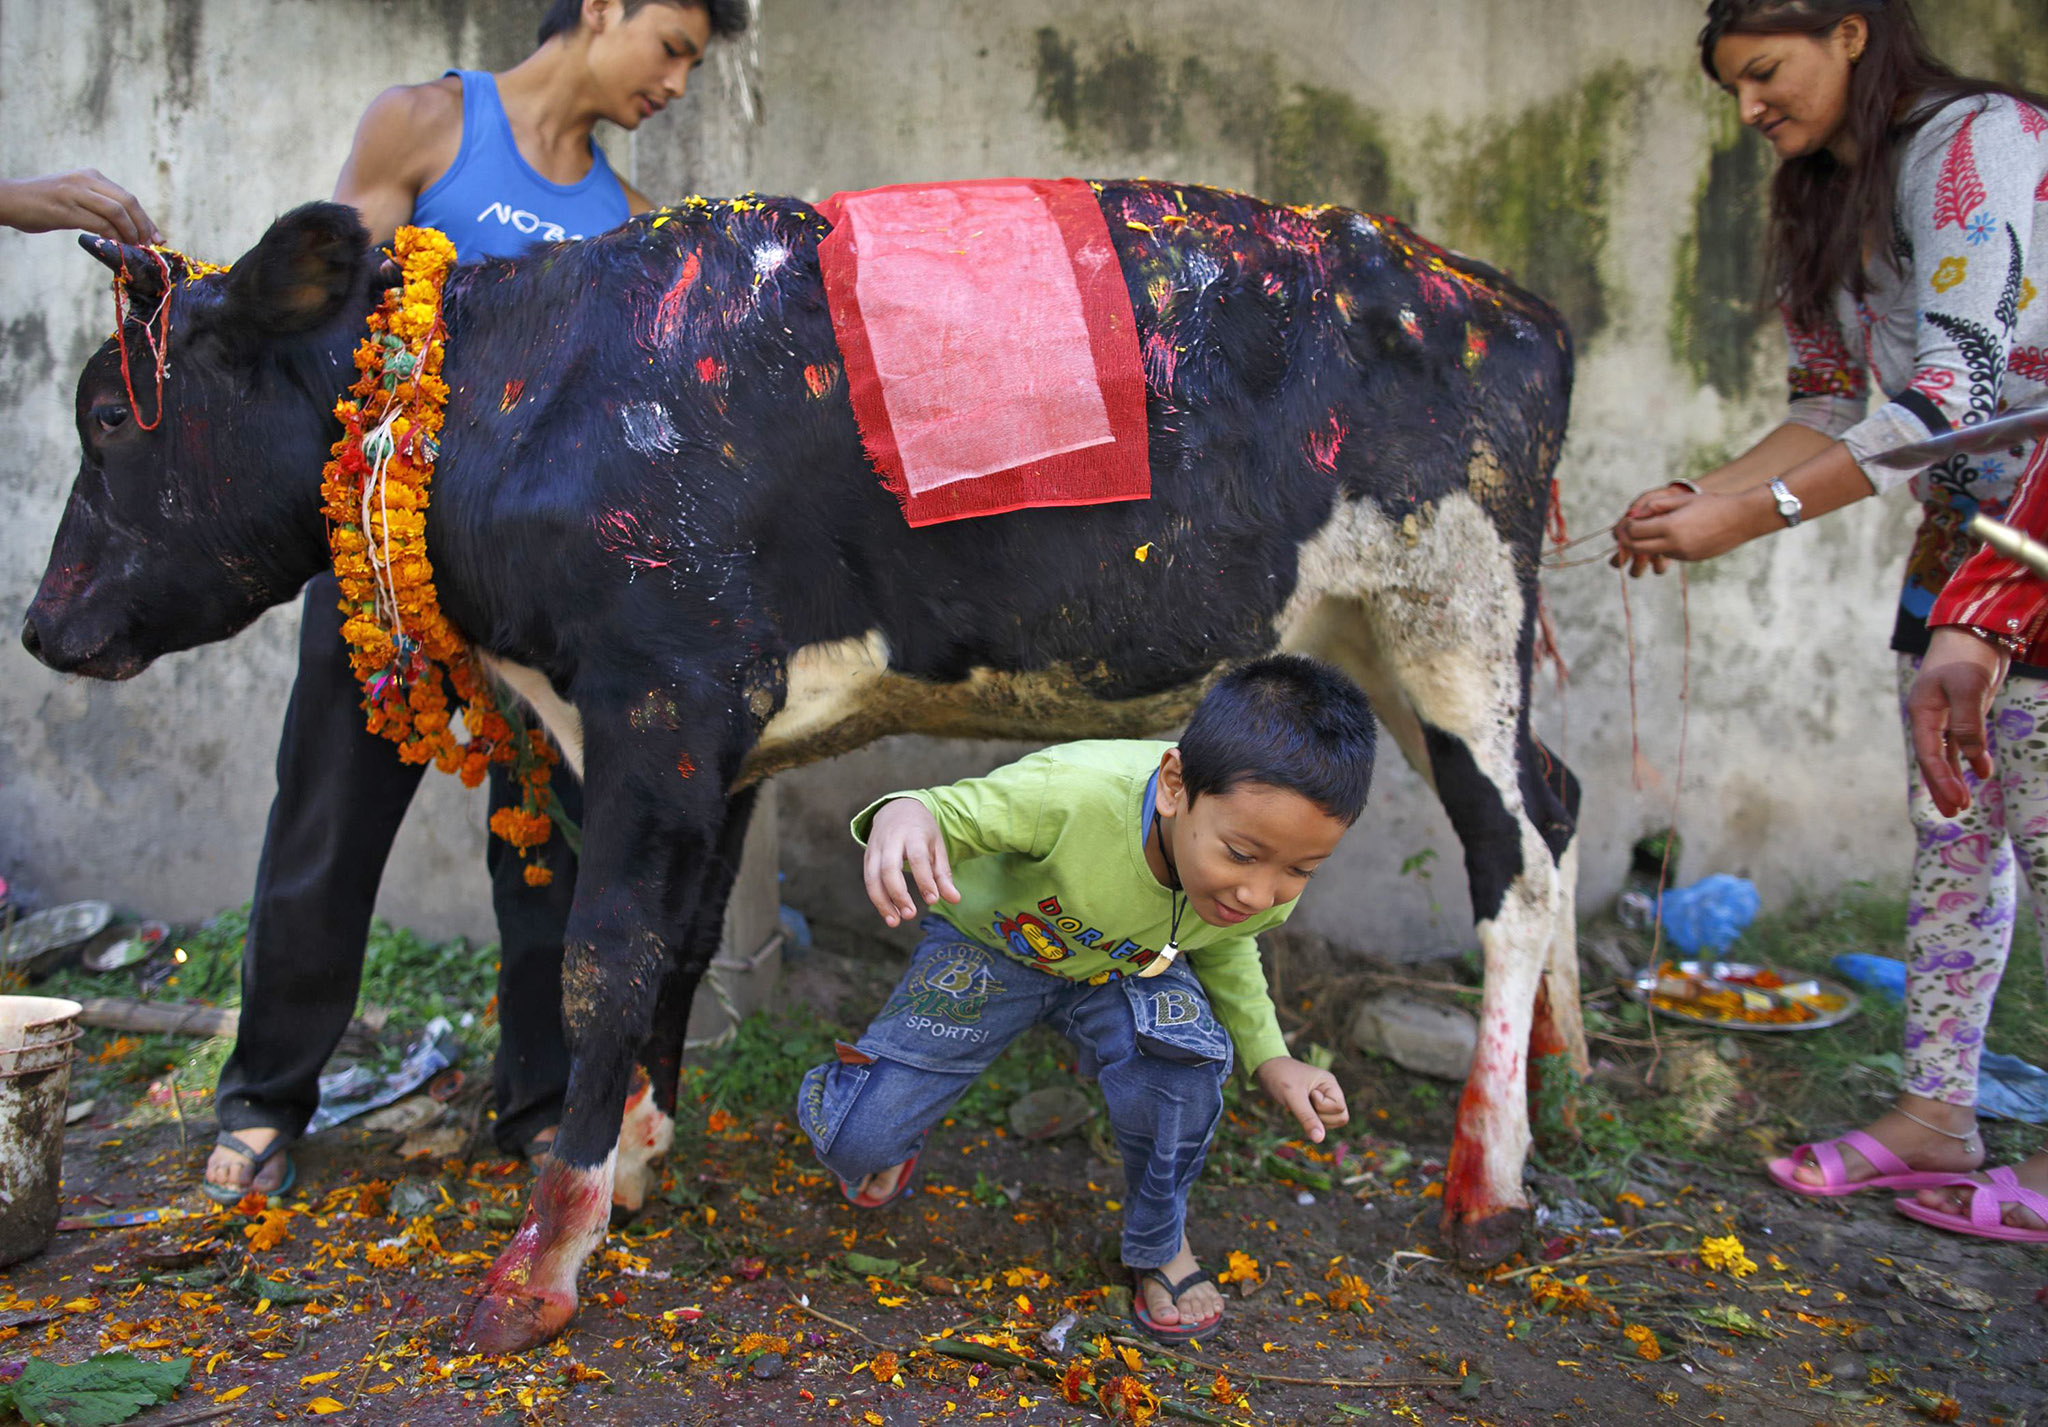 A boy crawls under a cow during a religious ceremony celebrating the Tihar festival, also called Diwali, in Kathmandu